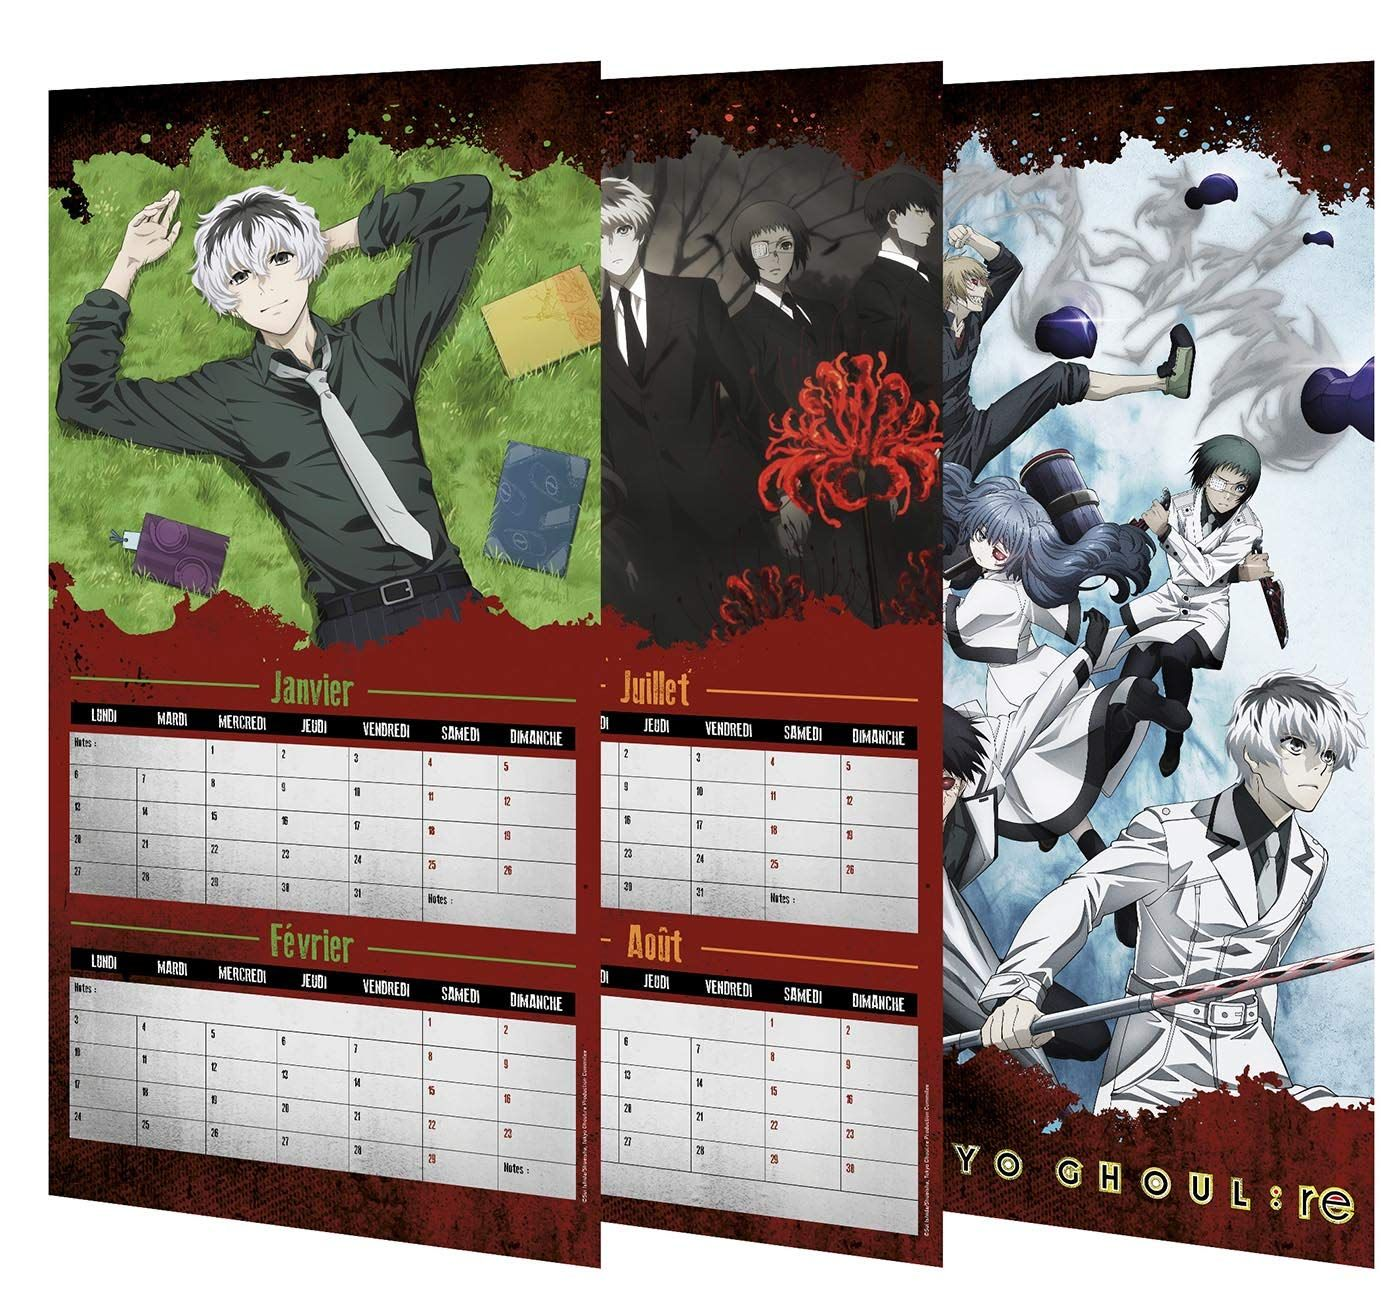 Calendrier Manga 2020.Goodie Tokyo Ghoul Re Calendrier 2020 Ynnis Manga News